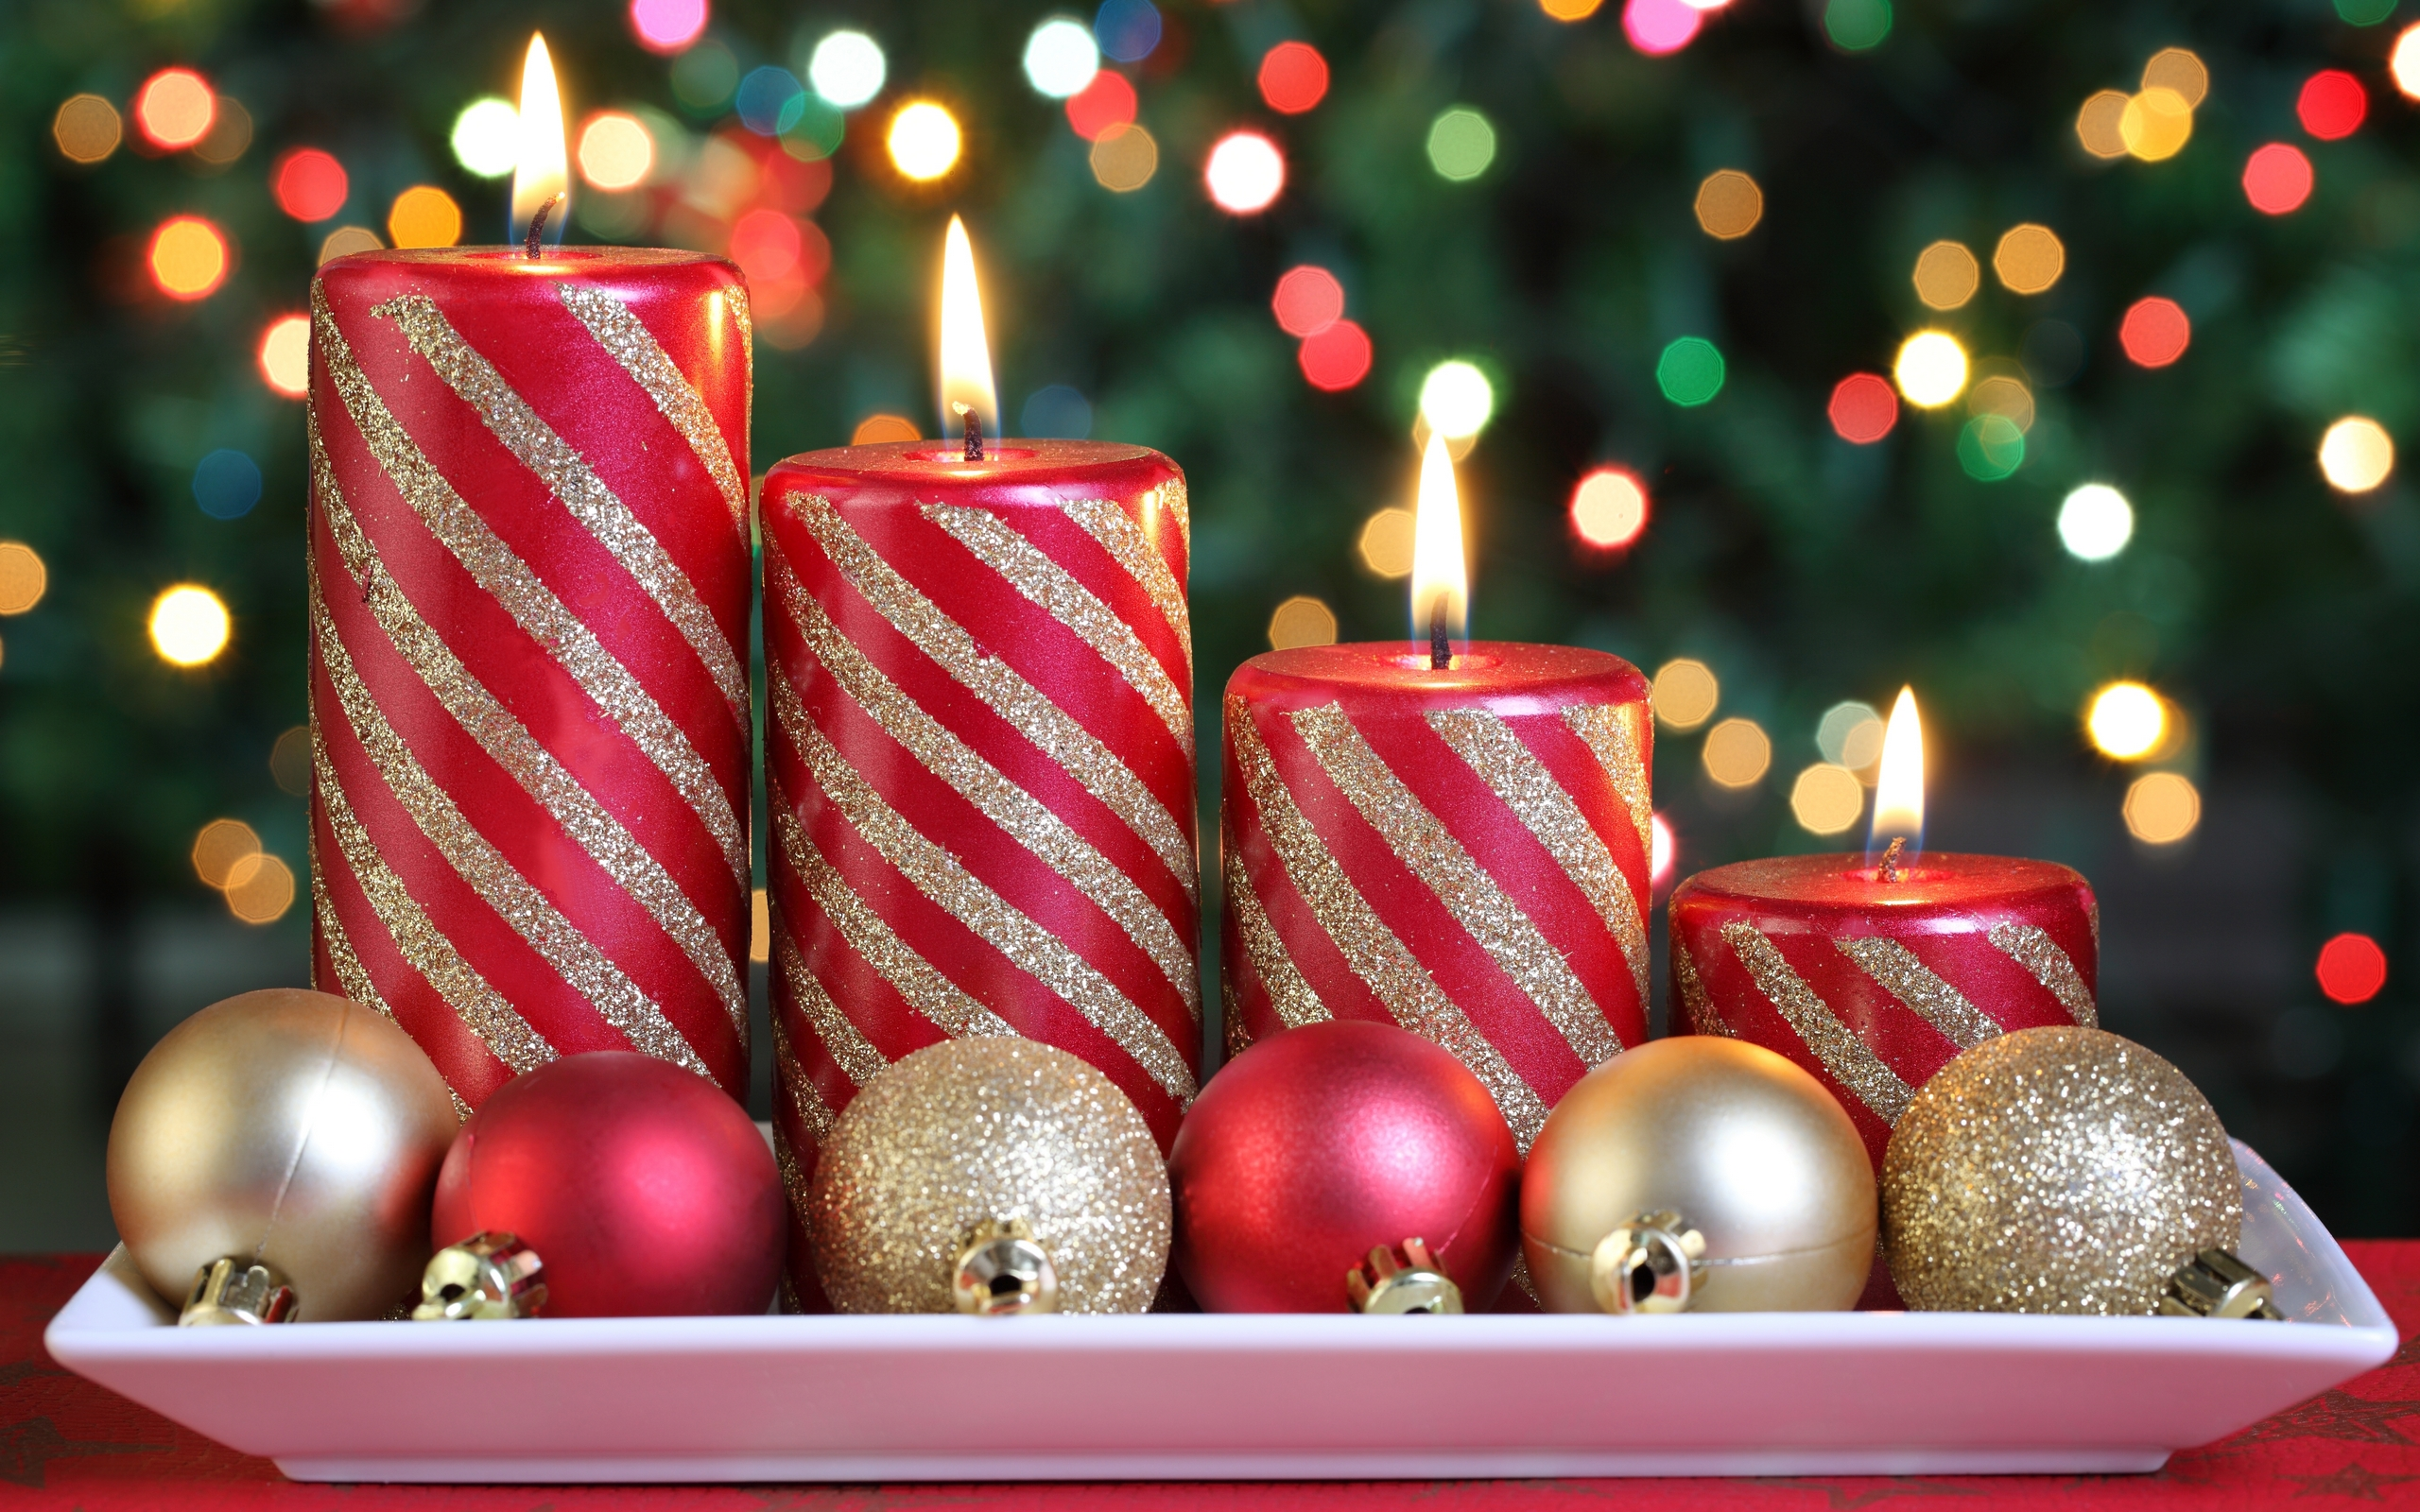 Merry Christmas Wallpaper 2017 - Candles Decoration For Christmas , HD Wallpaper & Backgrounds